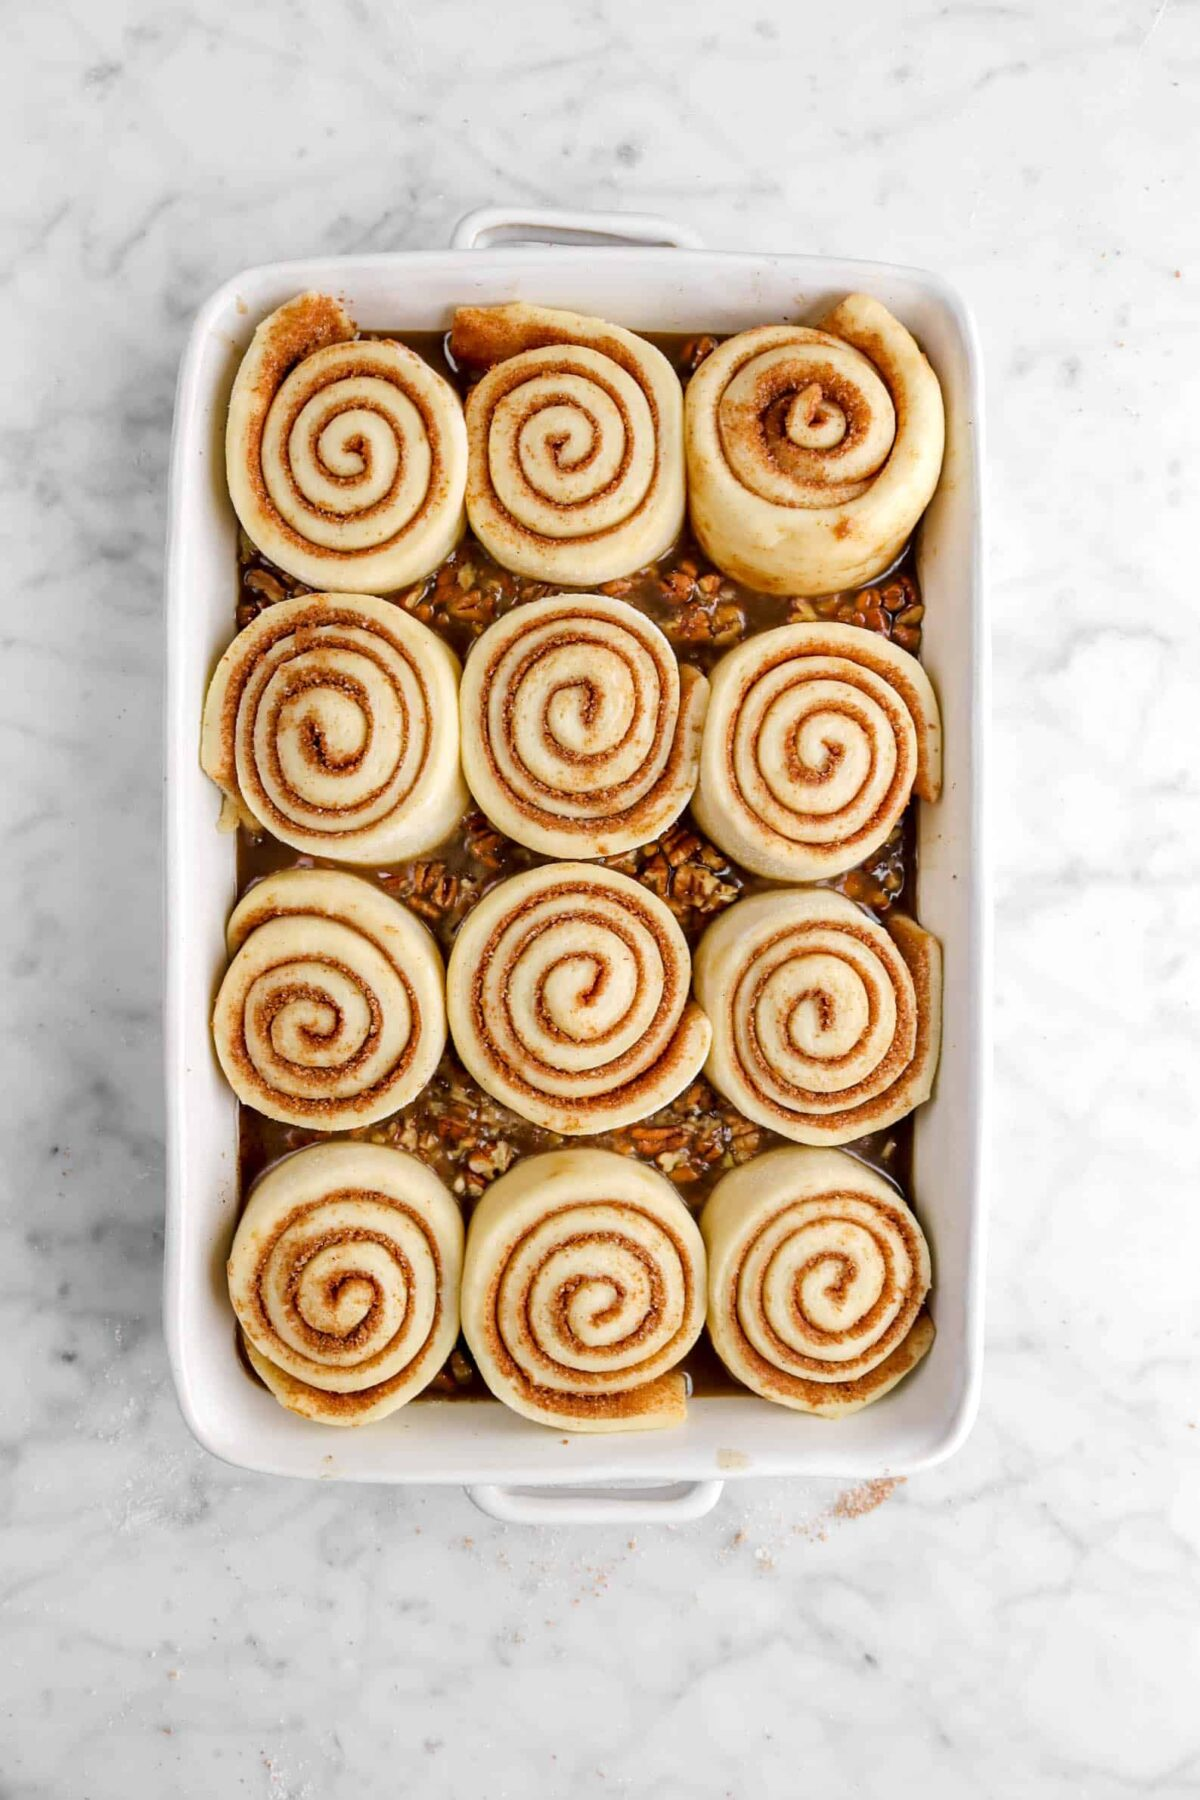 rolls doubled in size